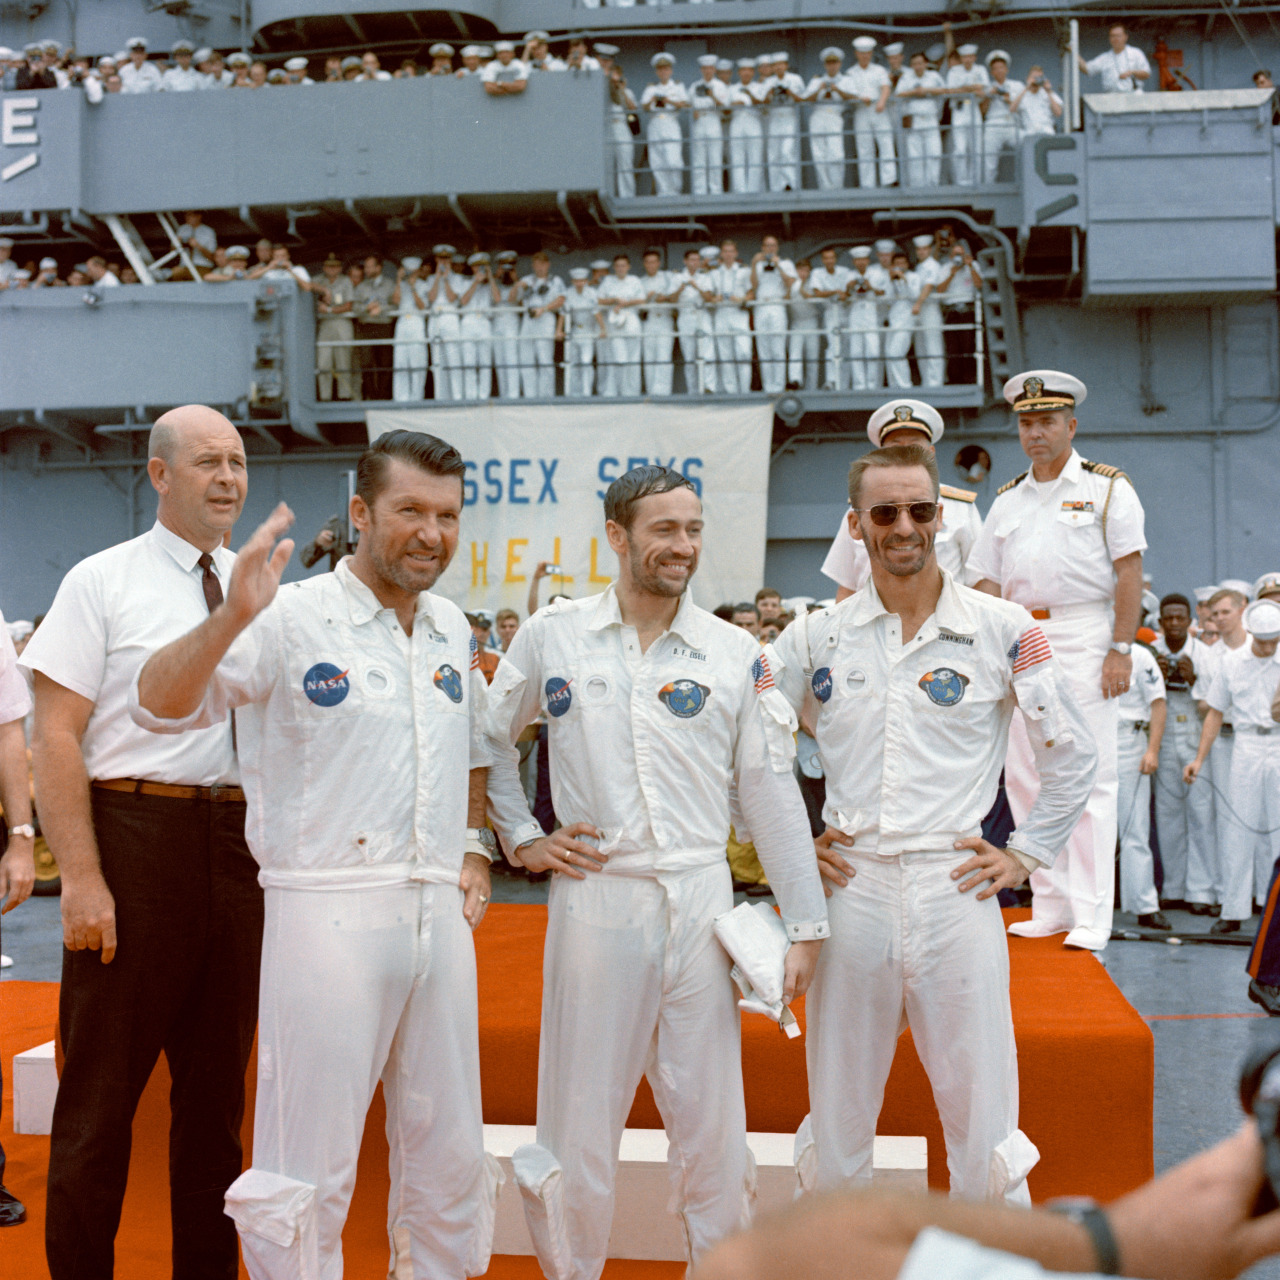 36 Amazing Historical Pictures. #9 Is Unbelievable - Apollo 7 astronauts Walter M. Schirra, Jr., Donn F. Eisele, and R. Walter Cunningham stand on recovery ship USS Essex after returning from an 11-day mission in space (October 22, 1968).